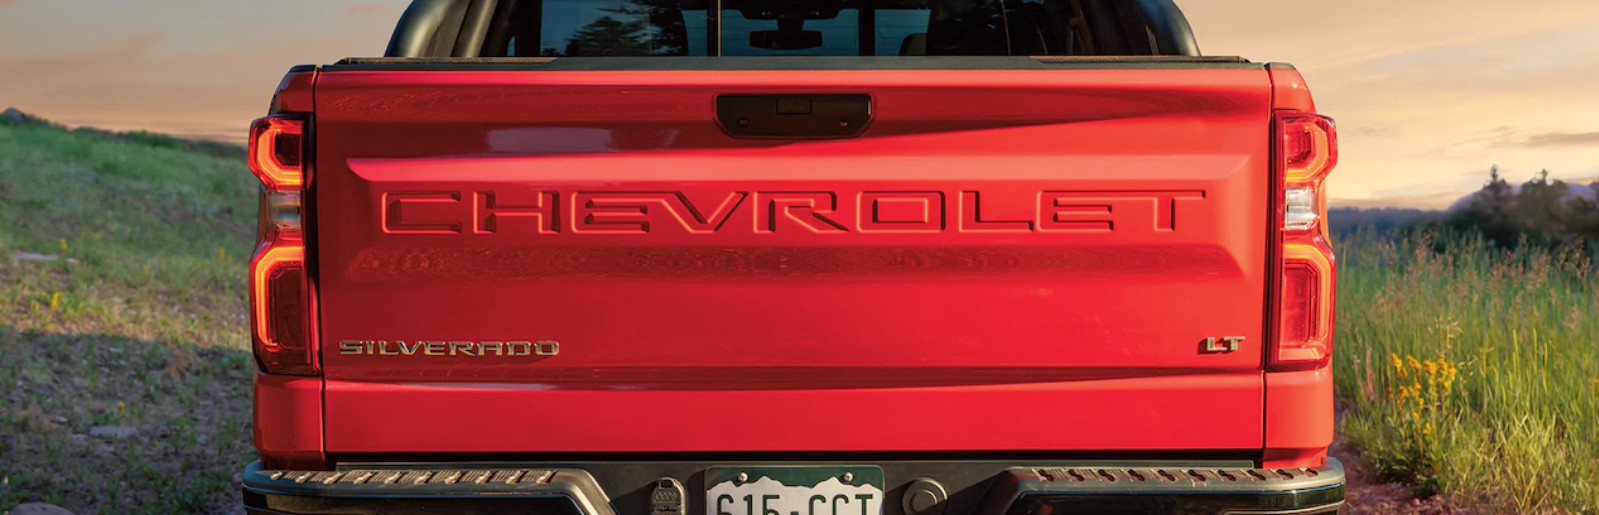 Tow With Confidence with the 2019 Silverado 1500!